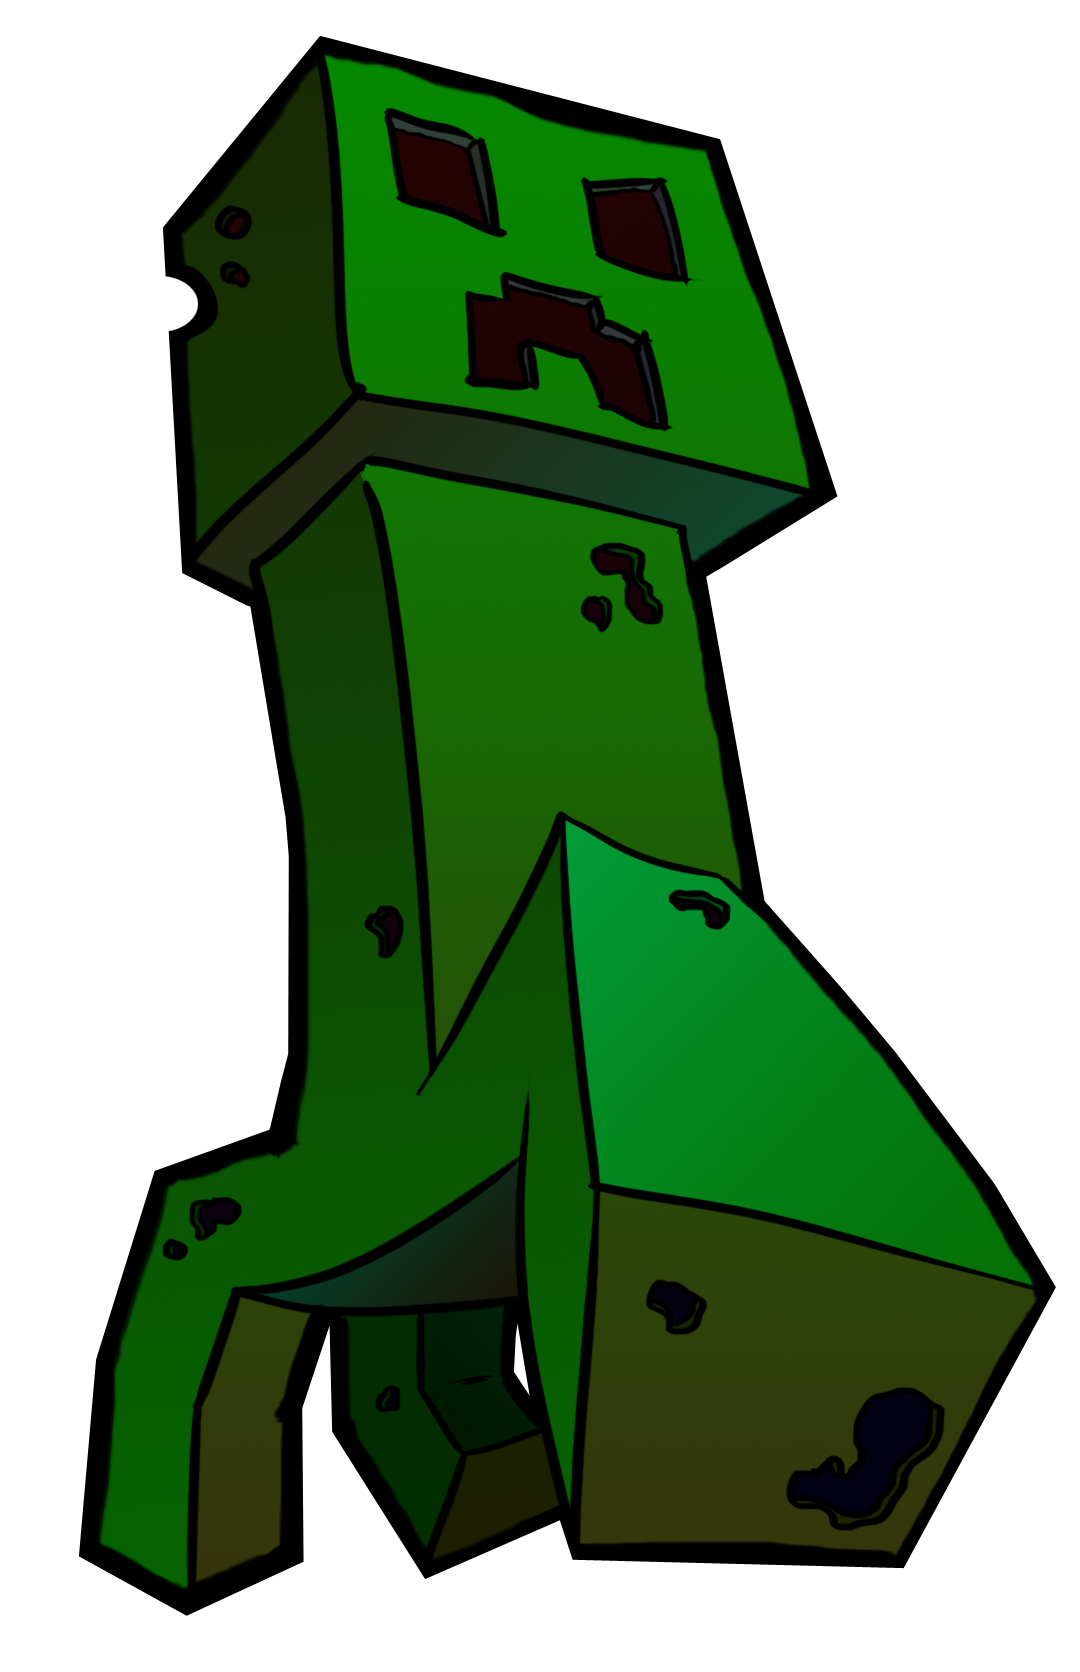 Creepers minecraft drawings